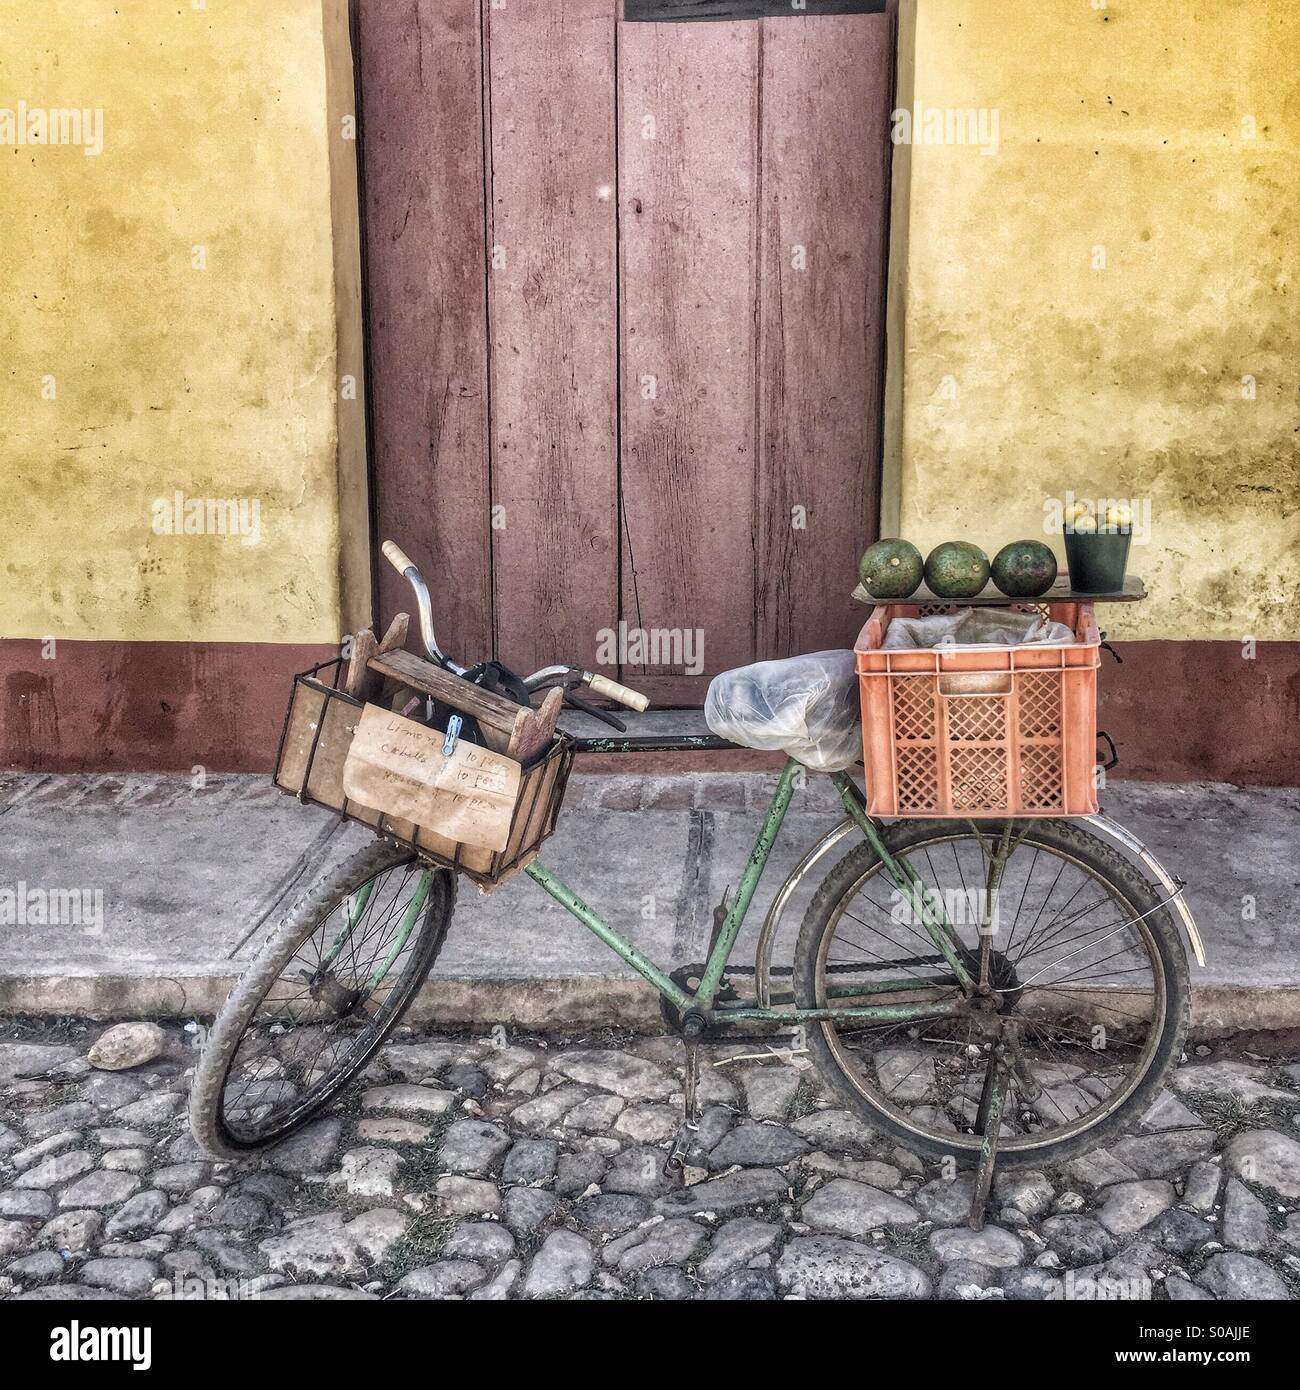 Fruit and vegetable sellers bicycle with produce outside a yellow painted property. Trinidad, Cuba, Caribbean - Stock Image